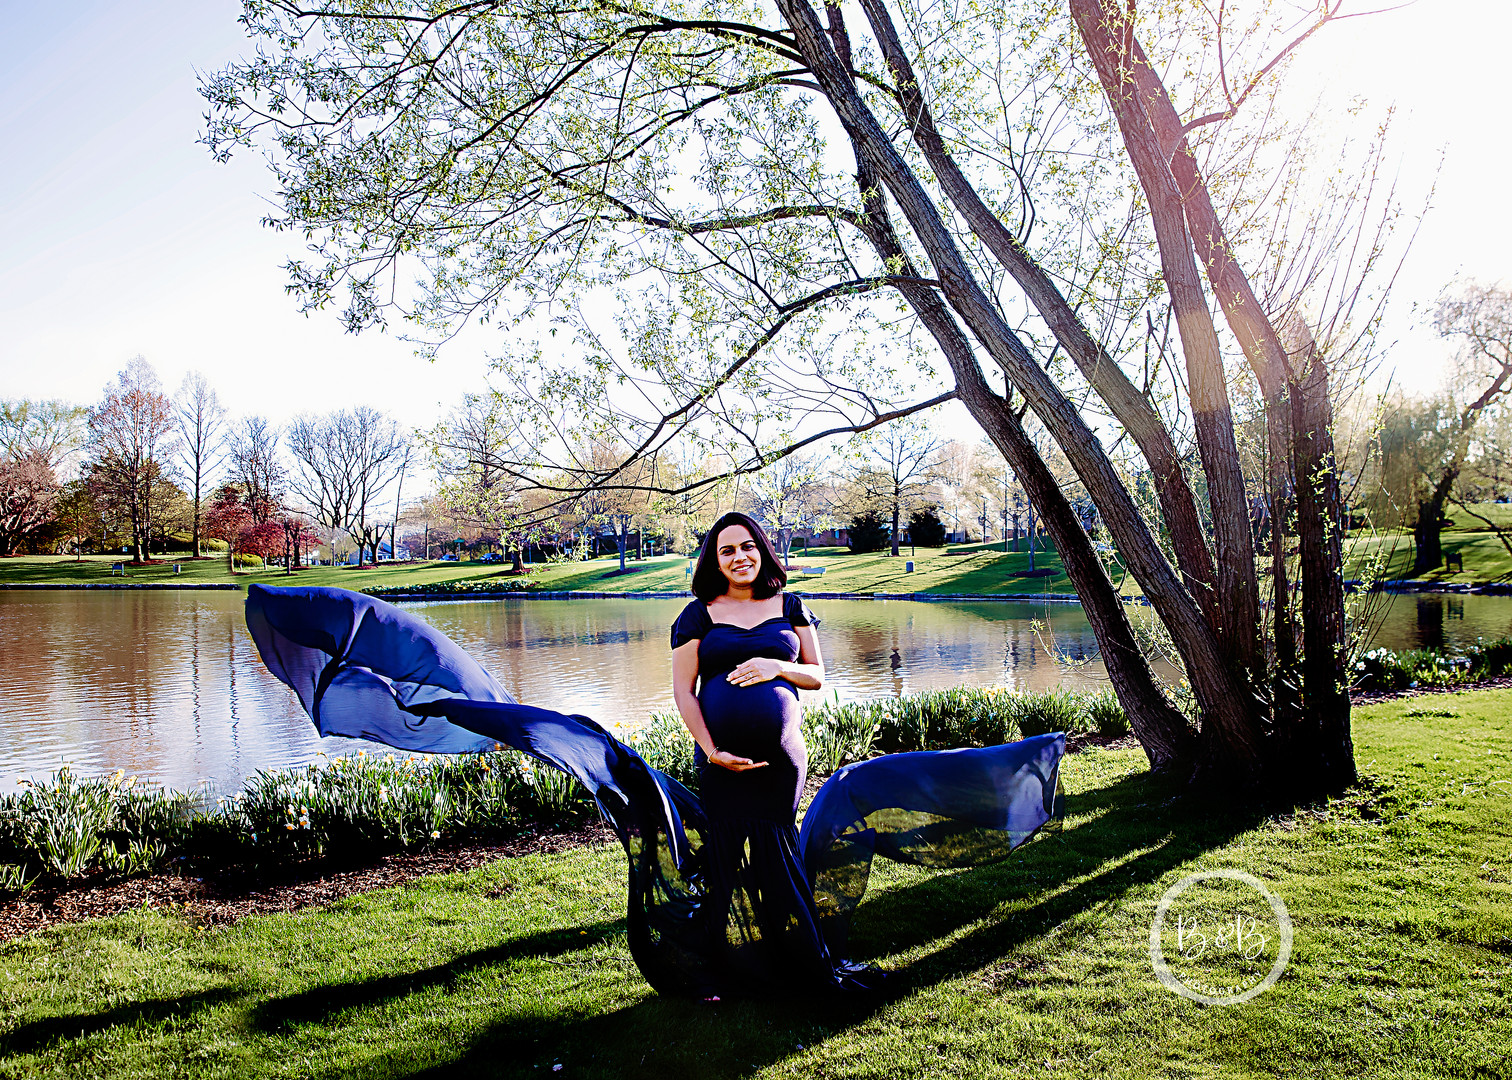 St Charles IL Maternity Photography Session